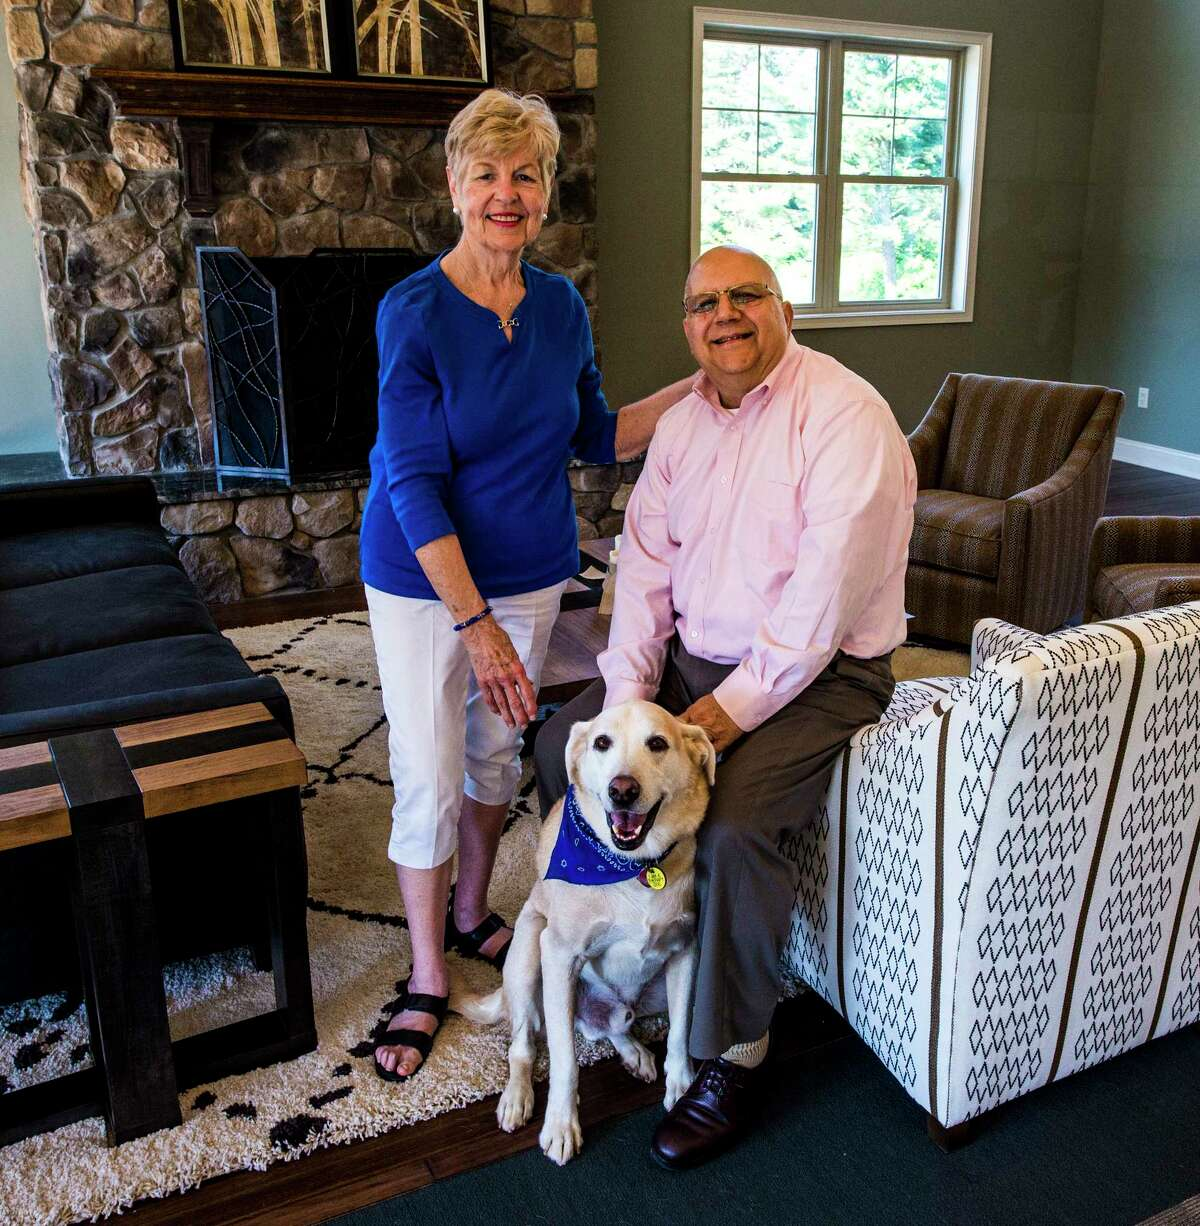 Pat and Charlie Giglio enjoy their time with Tanner the lab in the clubhouse of Mill Hollow Apartments Monday June 12, 2017 in Altamont, N.Y. (Skip Dickstein/Times Union)